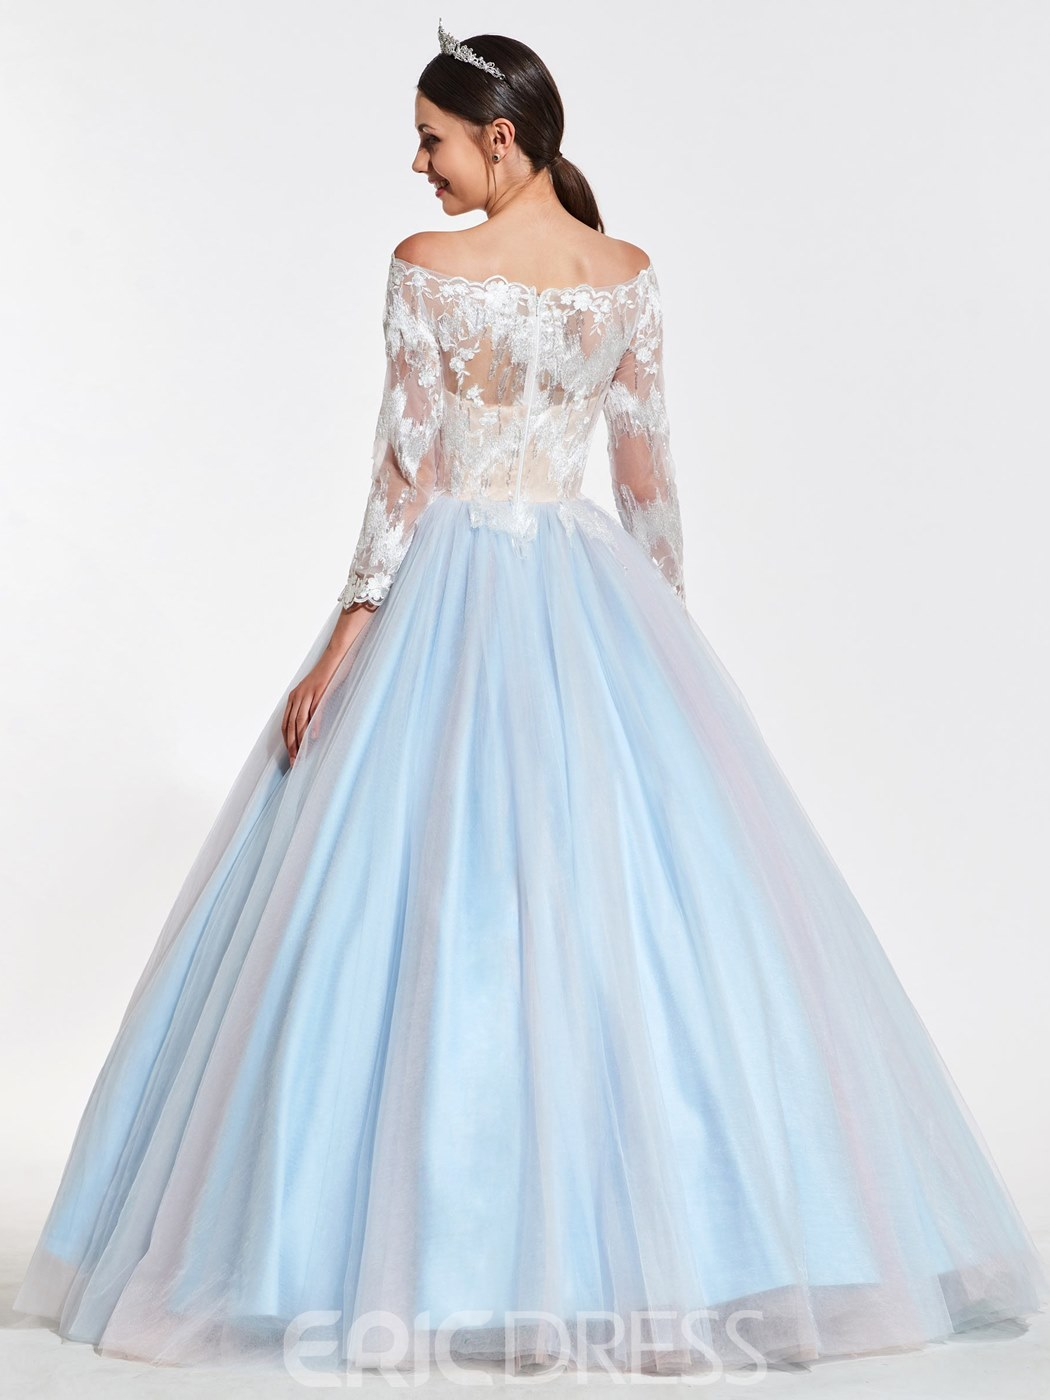 Ericdress Off The Shoulder Long Sleeve Ball Quincenera Gown